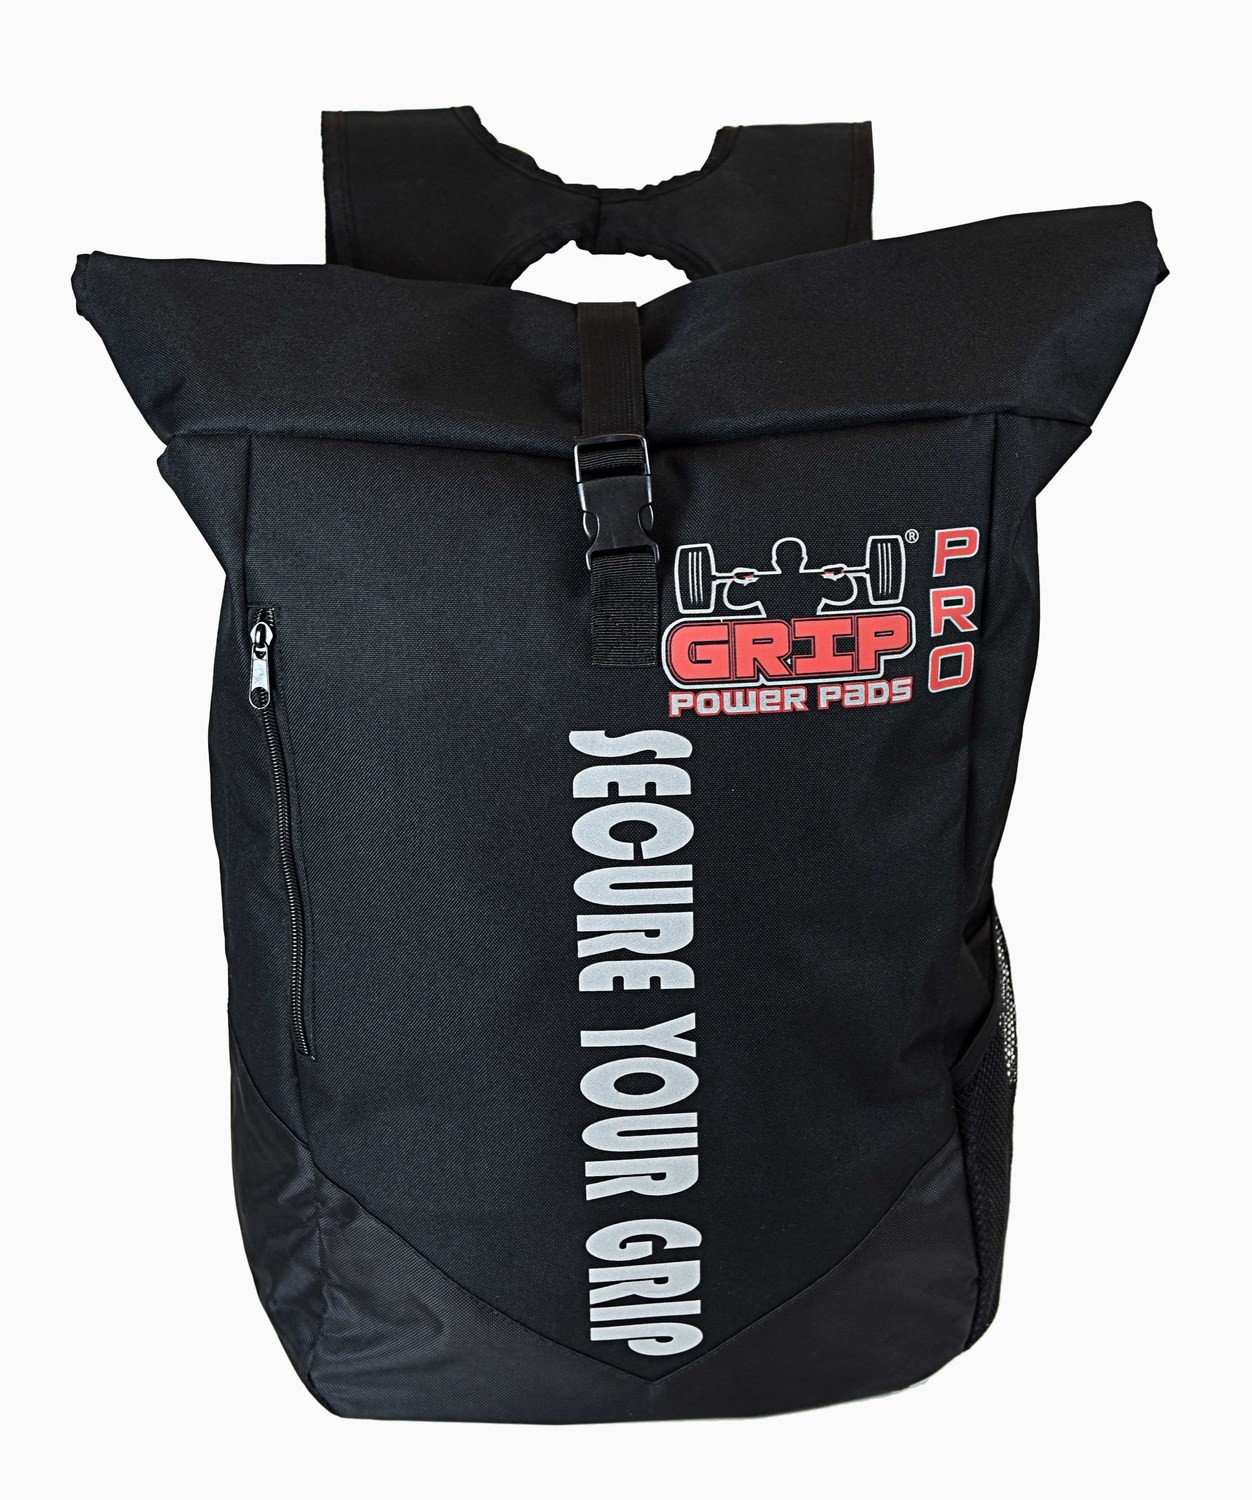 Grip Power Pads Sport Storm Roll Trance Sackpack Gym Bag